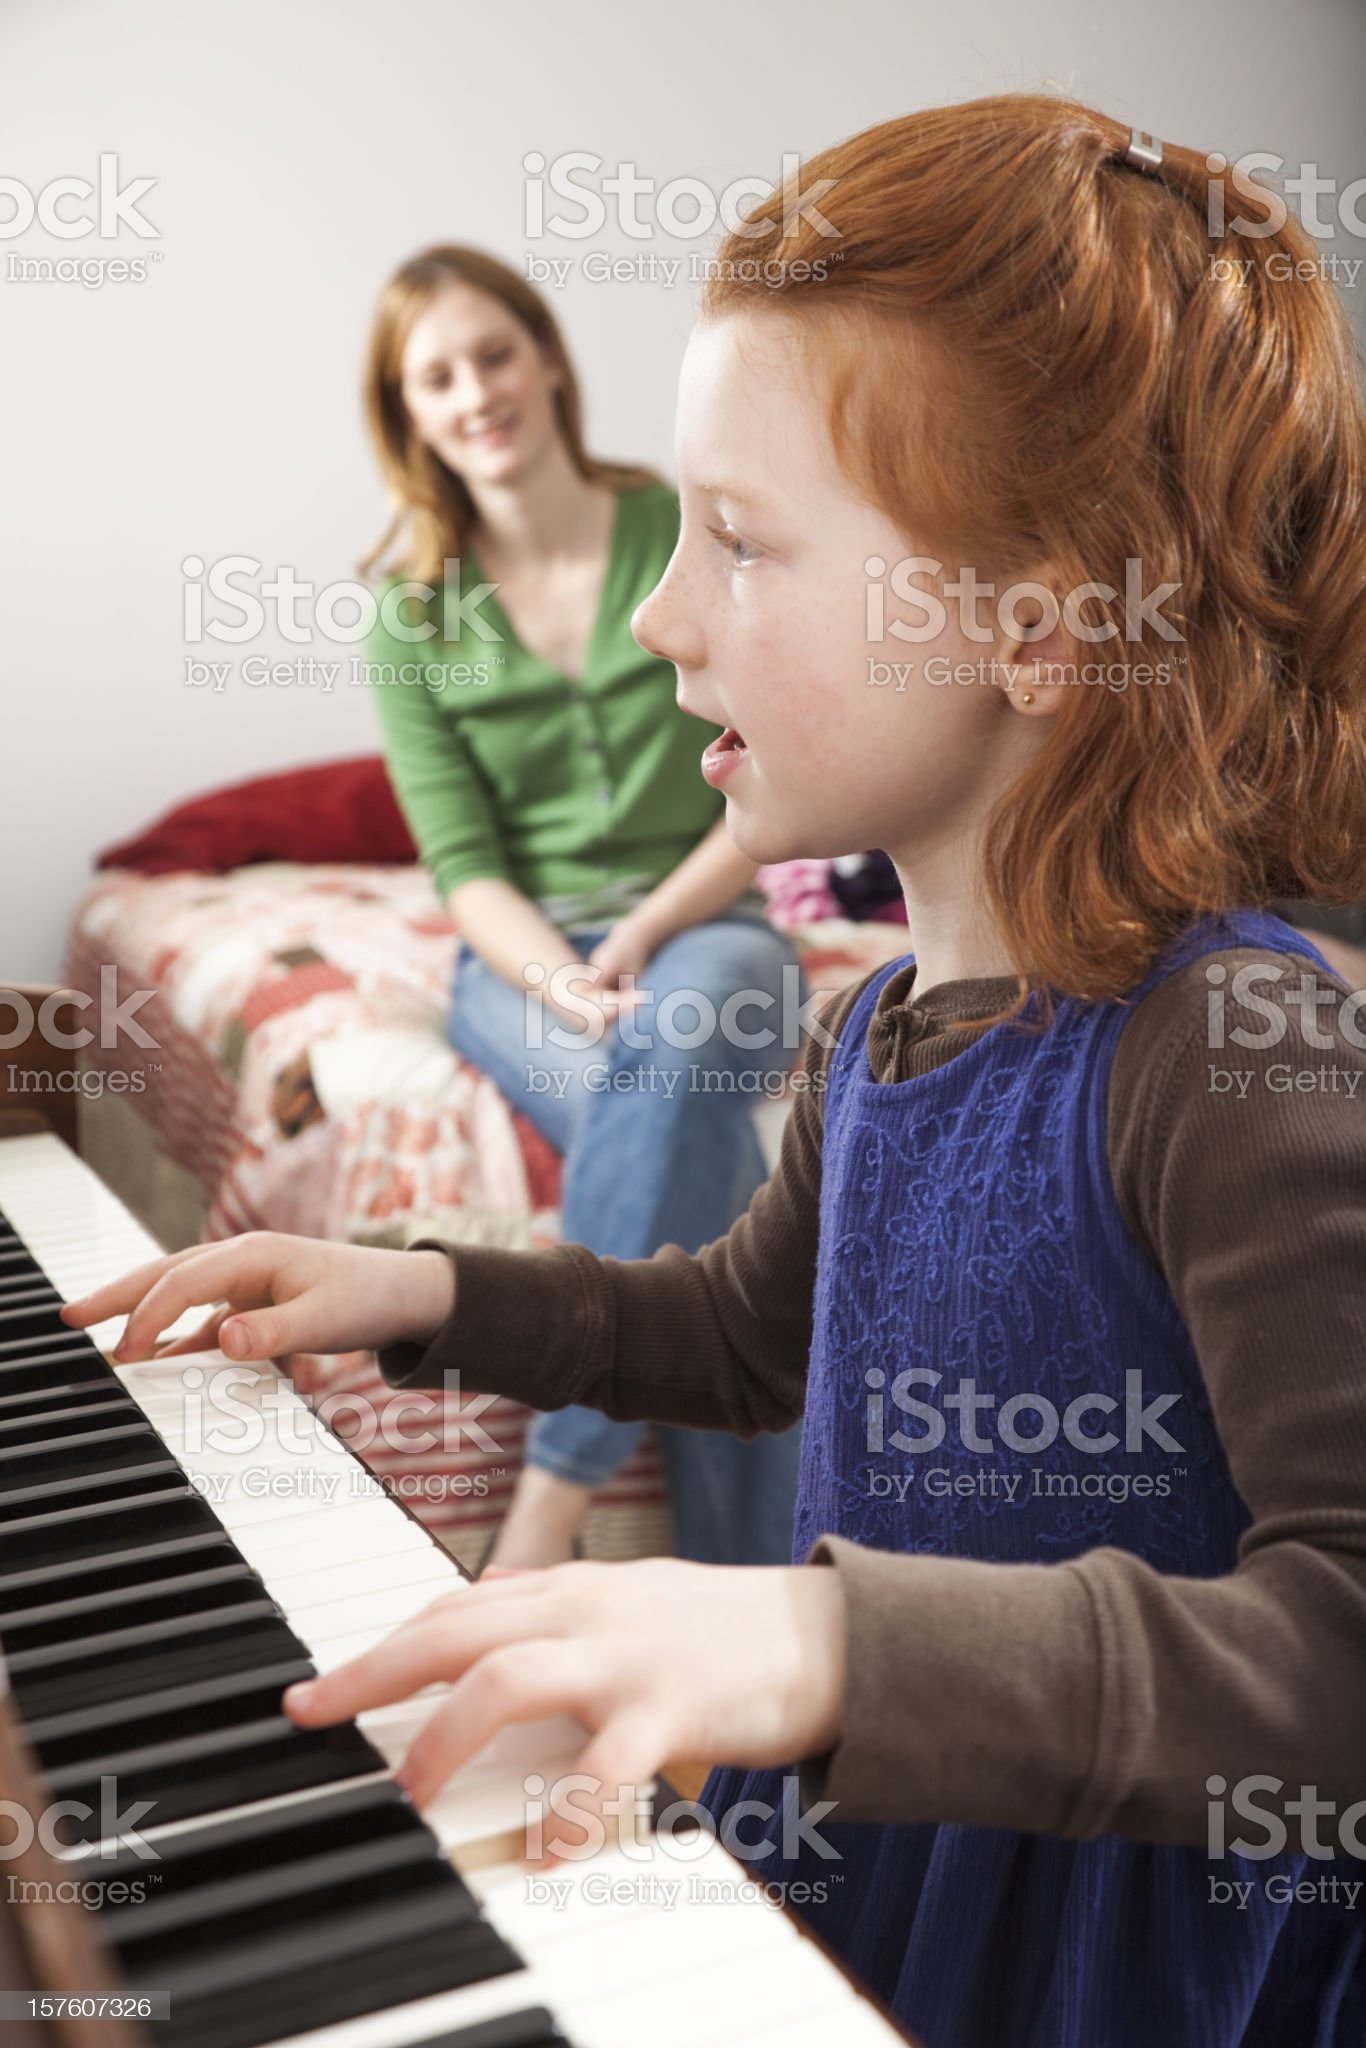 little girl playing piano while her mother watches and listens royalty-free stock photo